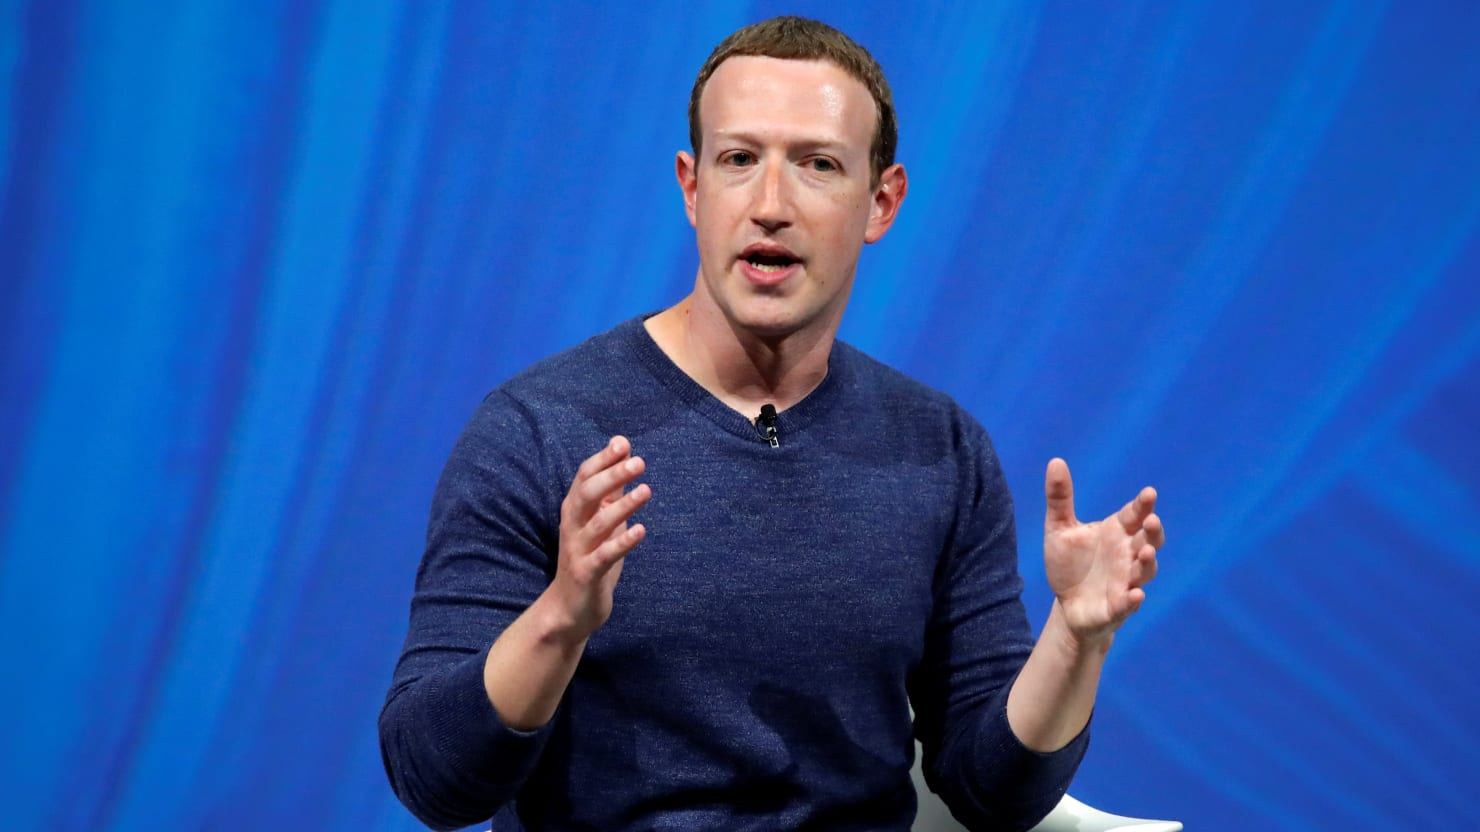 FTC Considering Holding Facebook CEO Mark Zuckerberg Accountable for Privacy Issues: Report